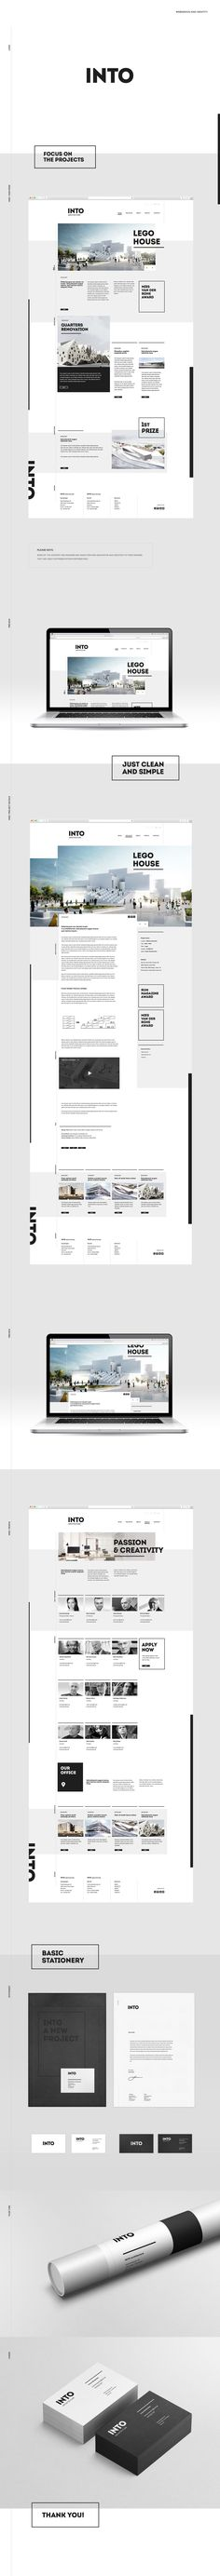 webdesign and branding concept for future architecture office